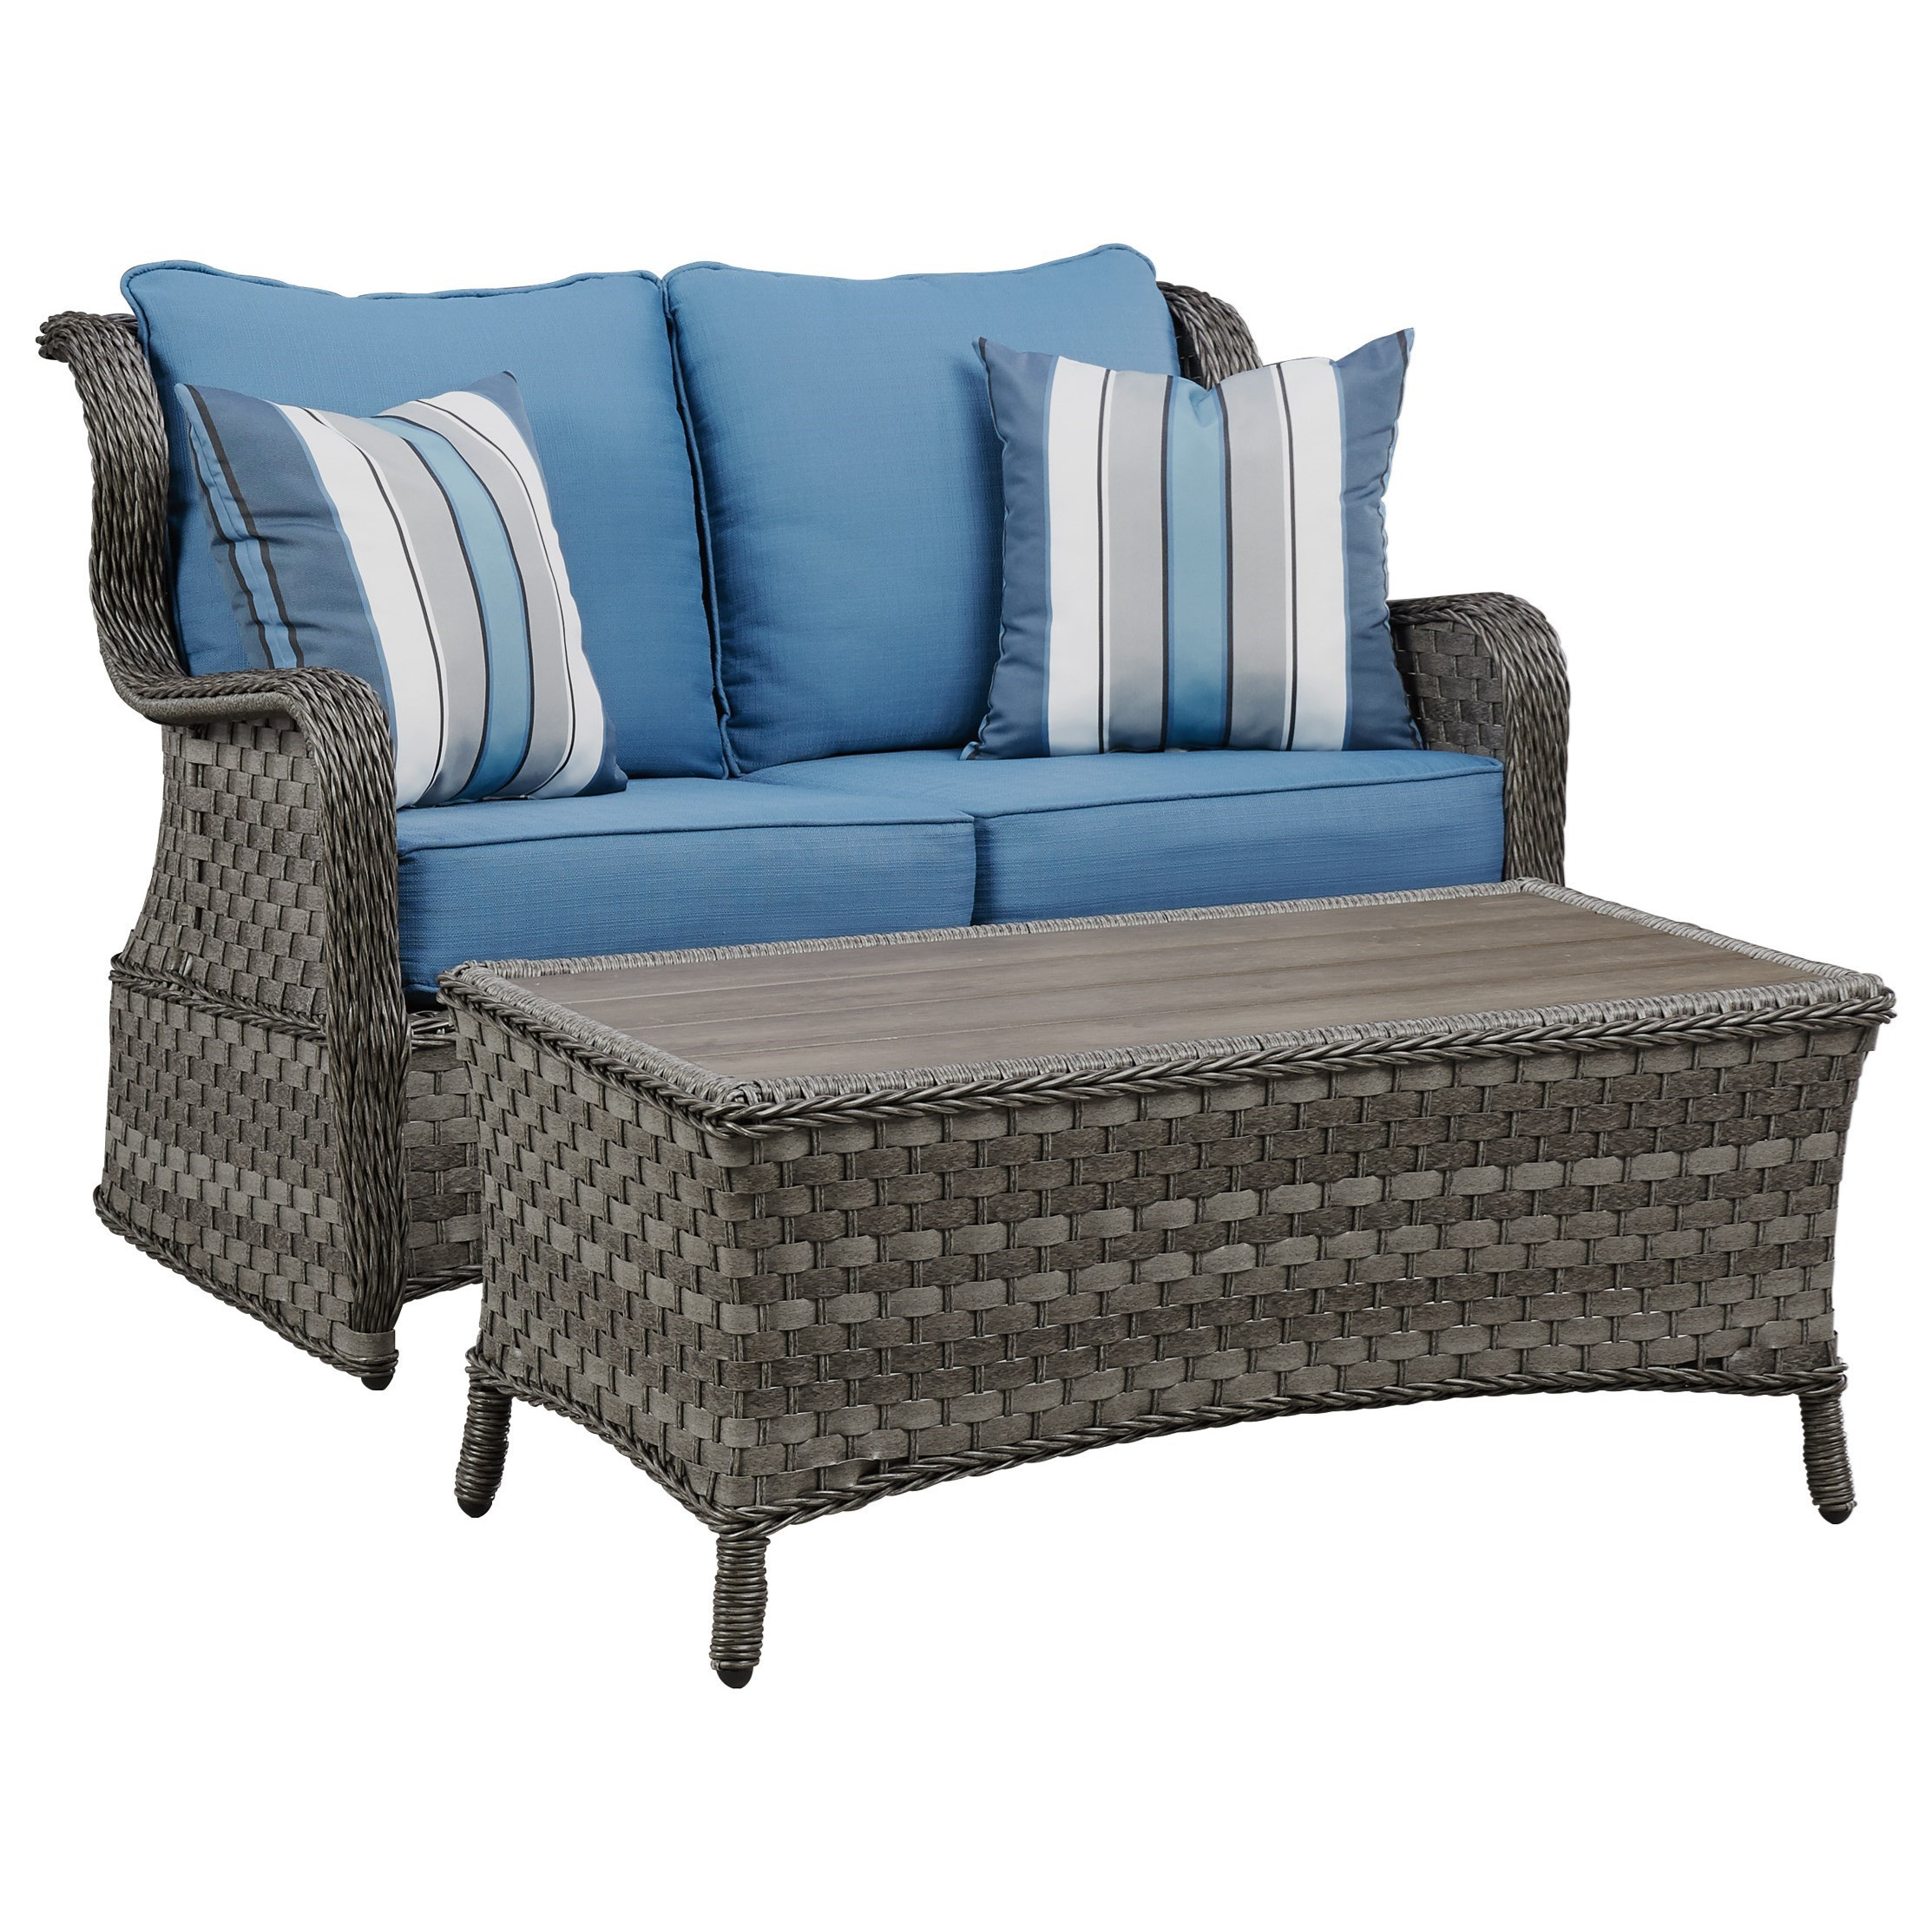 signature design by ashley abbots court outdoor loveseat. Black Bedroom Furniture Sets. Home Design Ideas